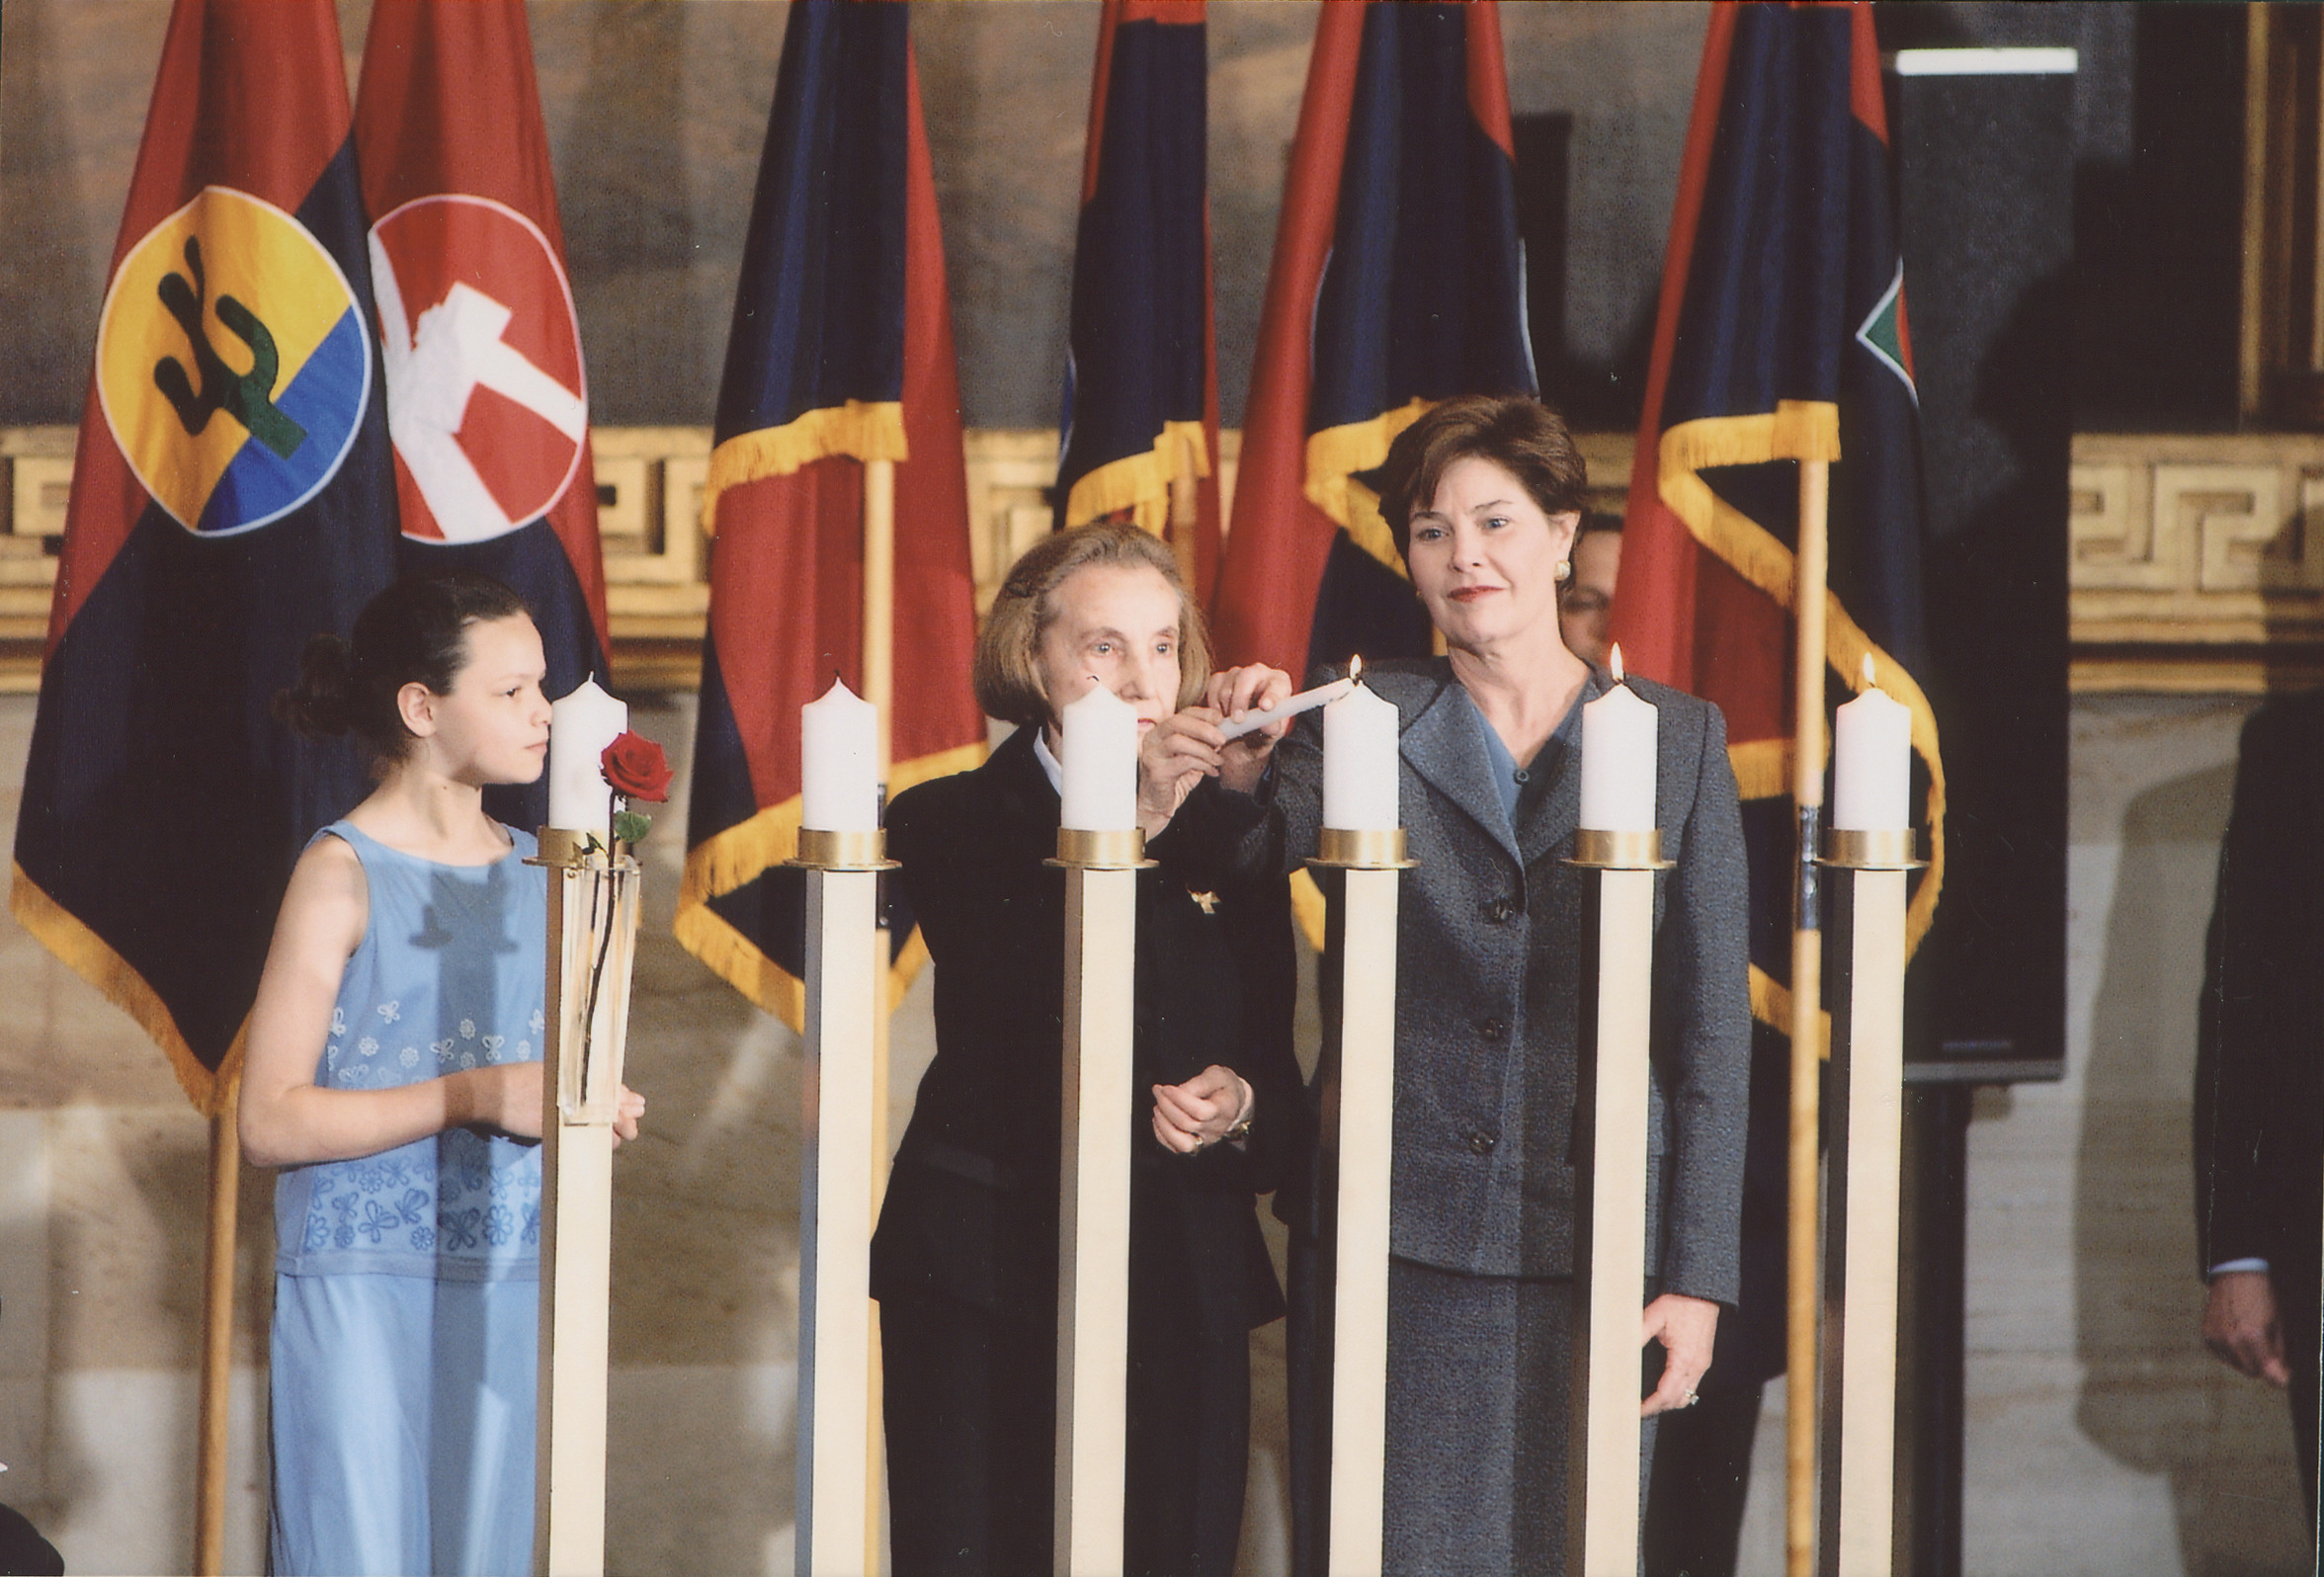 Laura Bush and Vladka Meed light a candle at the 2001 Days of Remembrance ceremony, U.S. Capitol Rotunda.